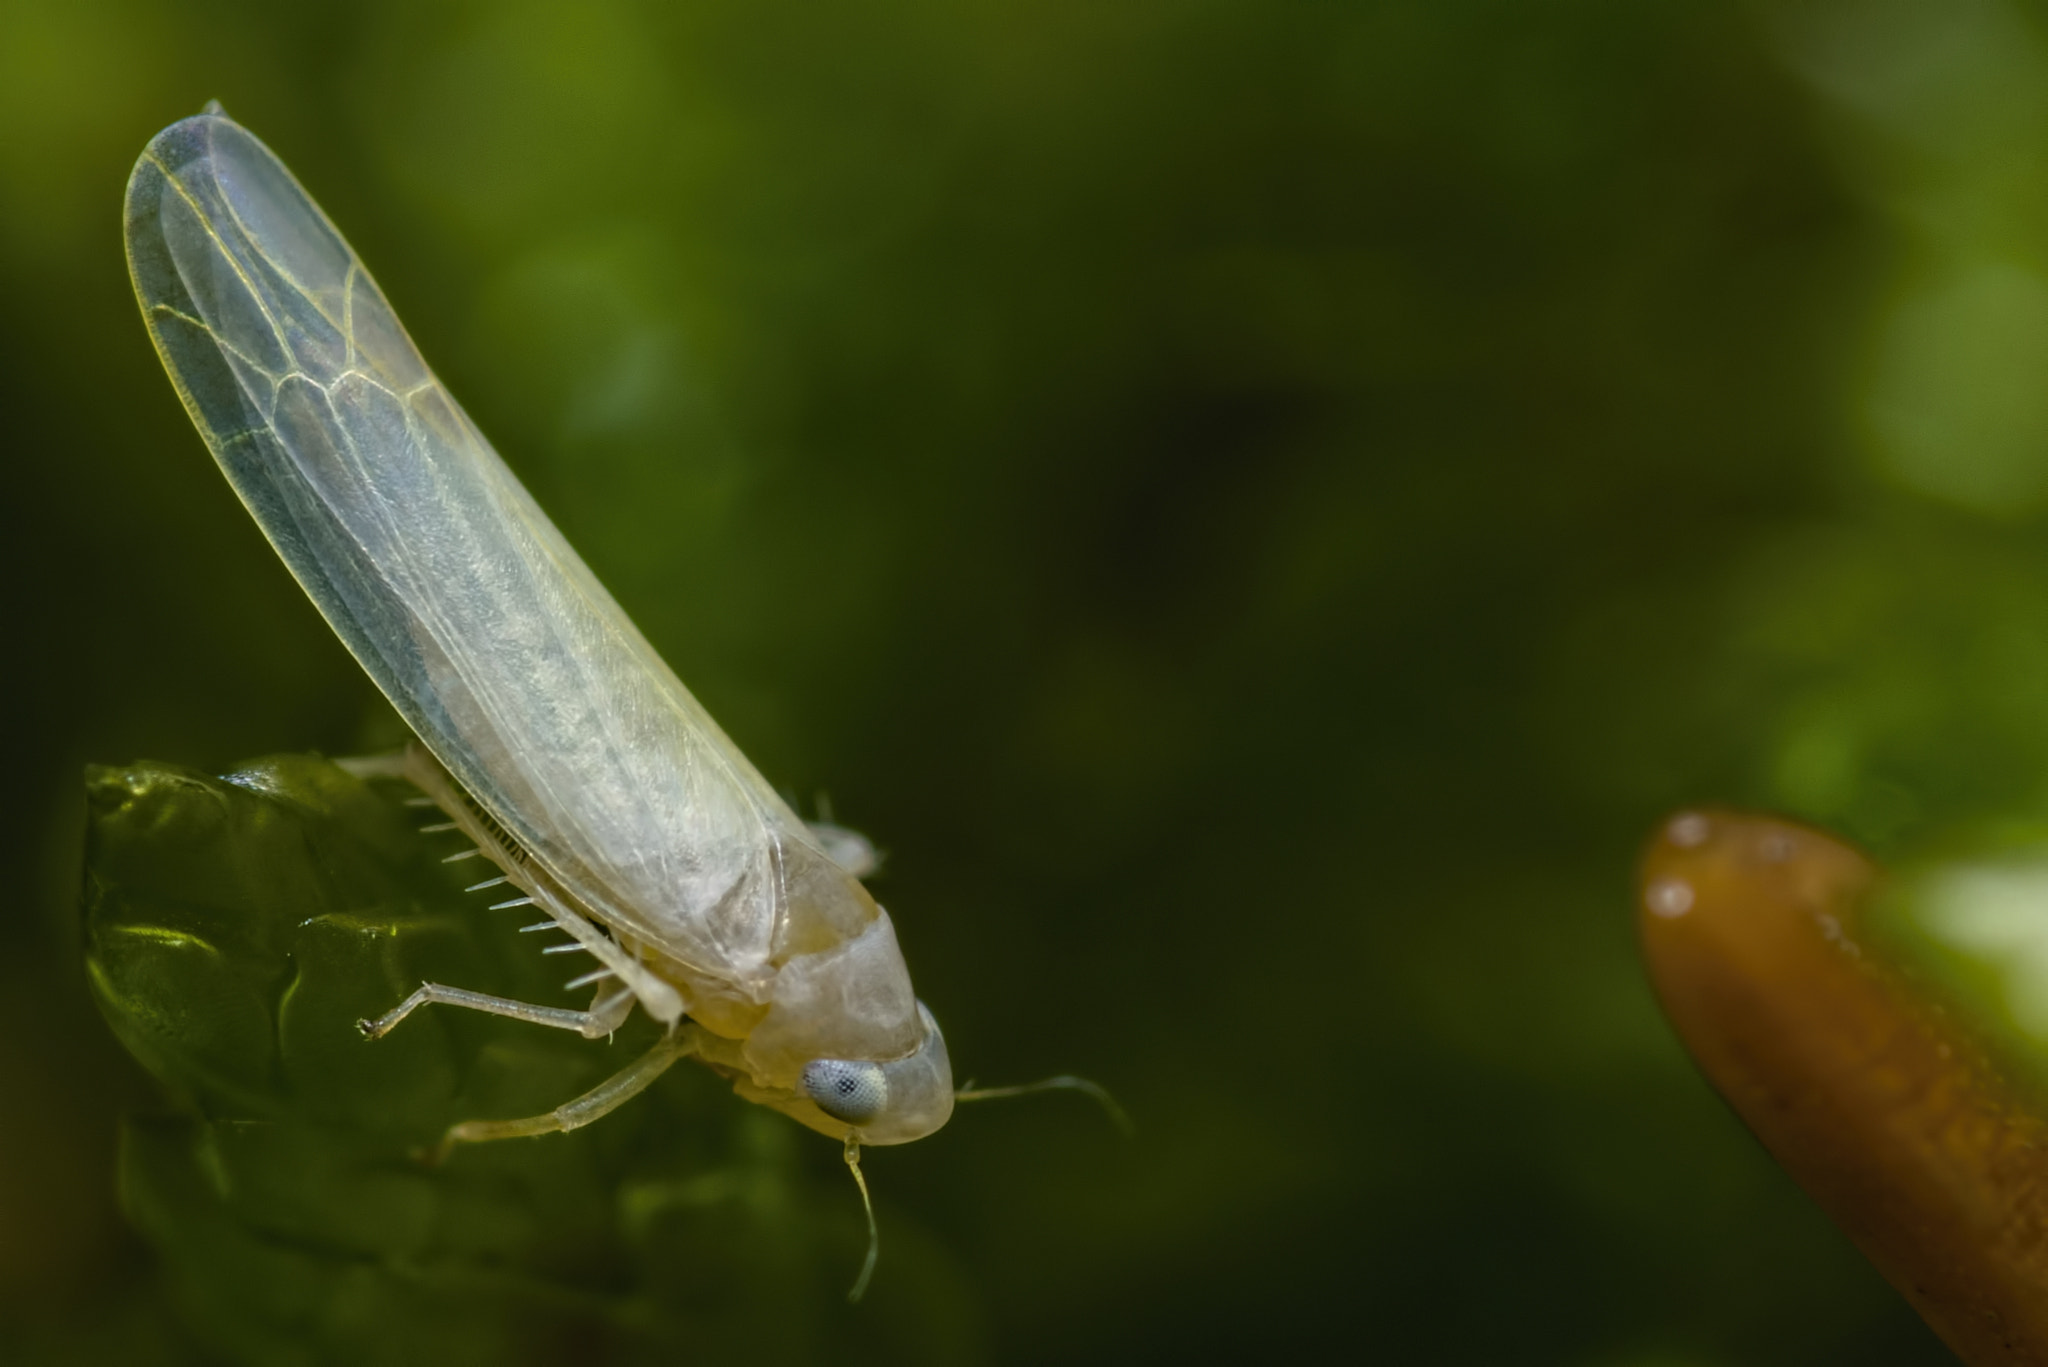 Photograph Leafhopper by K. Beck on 500px